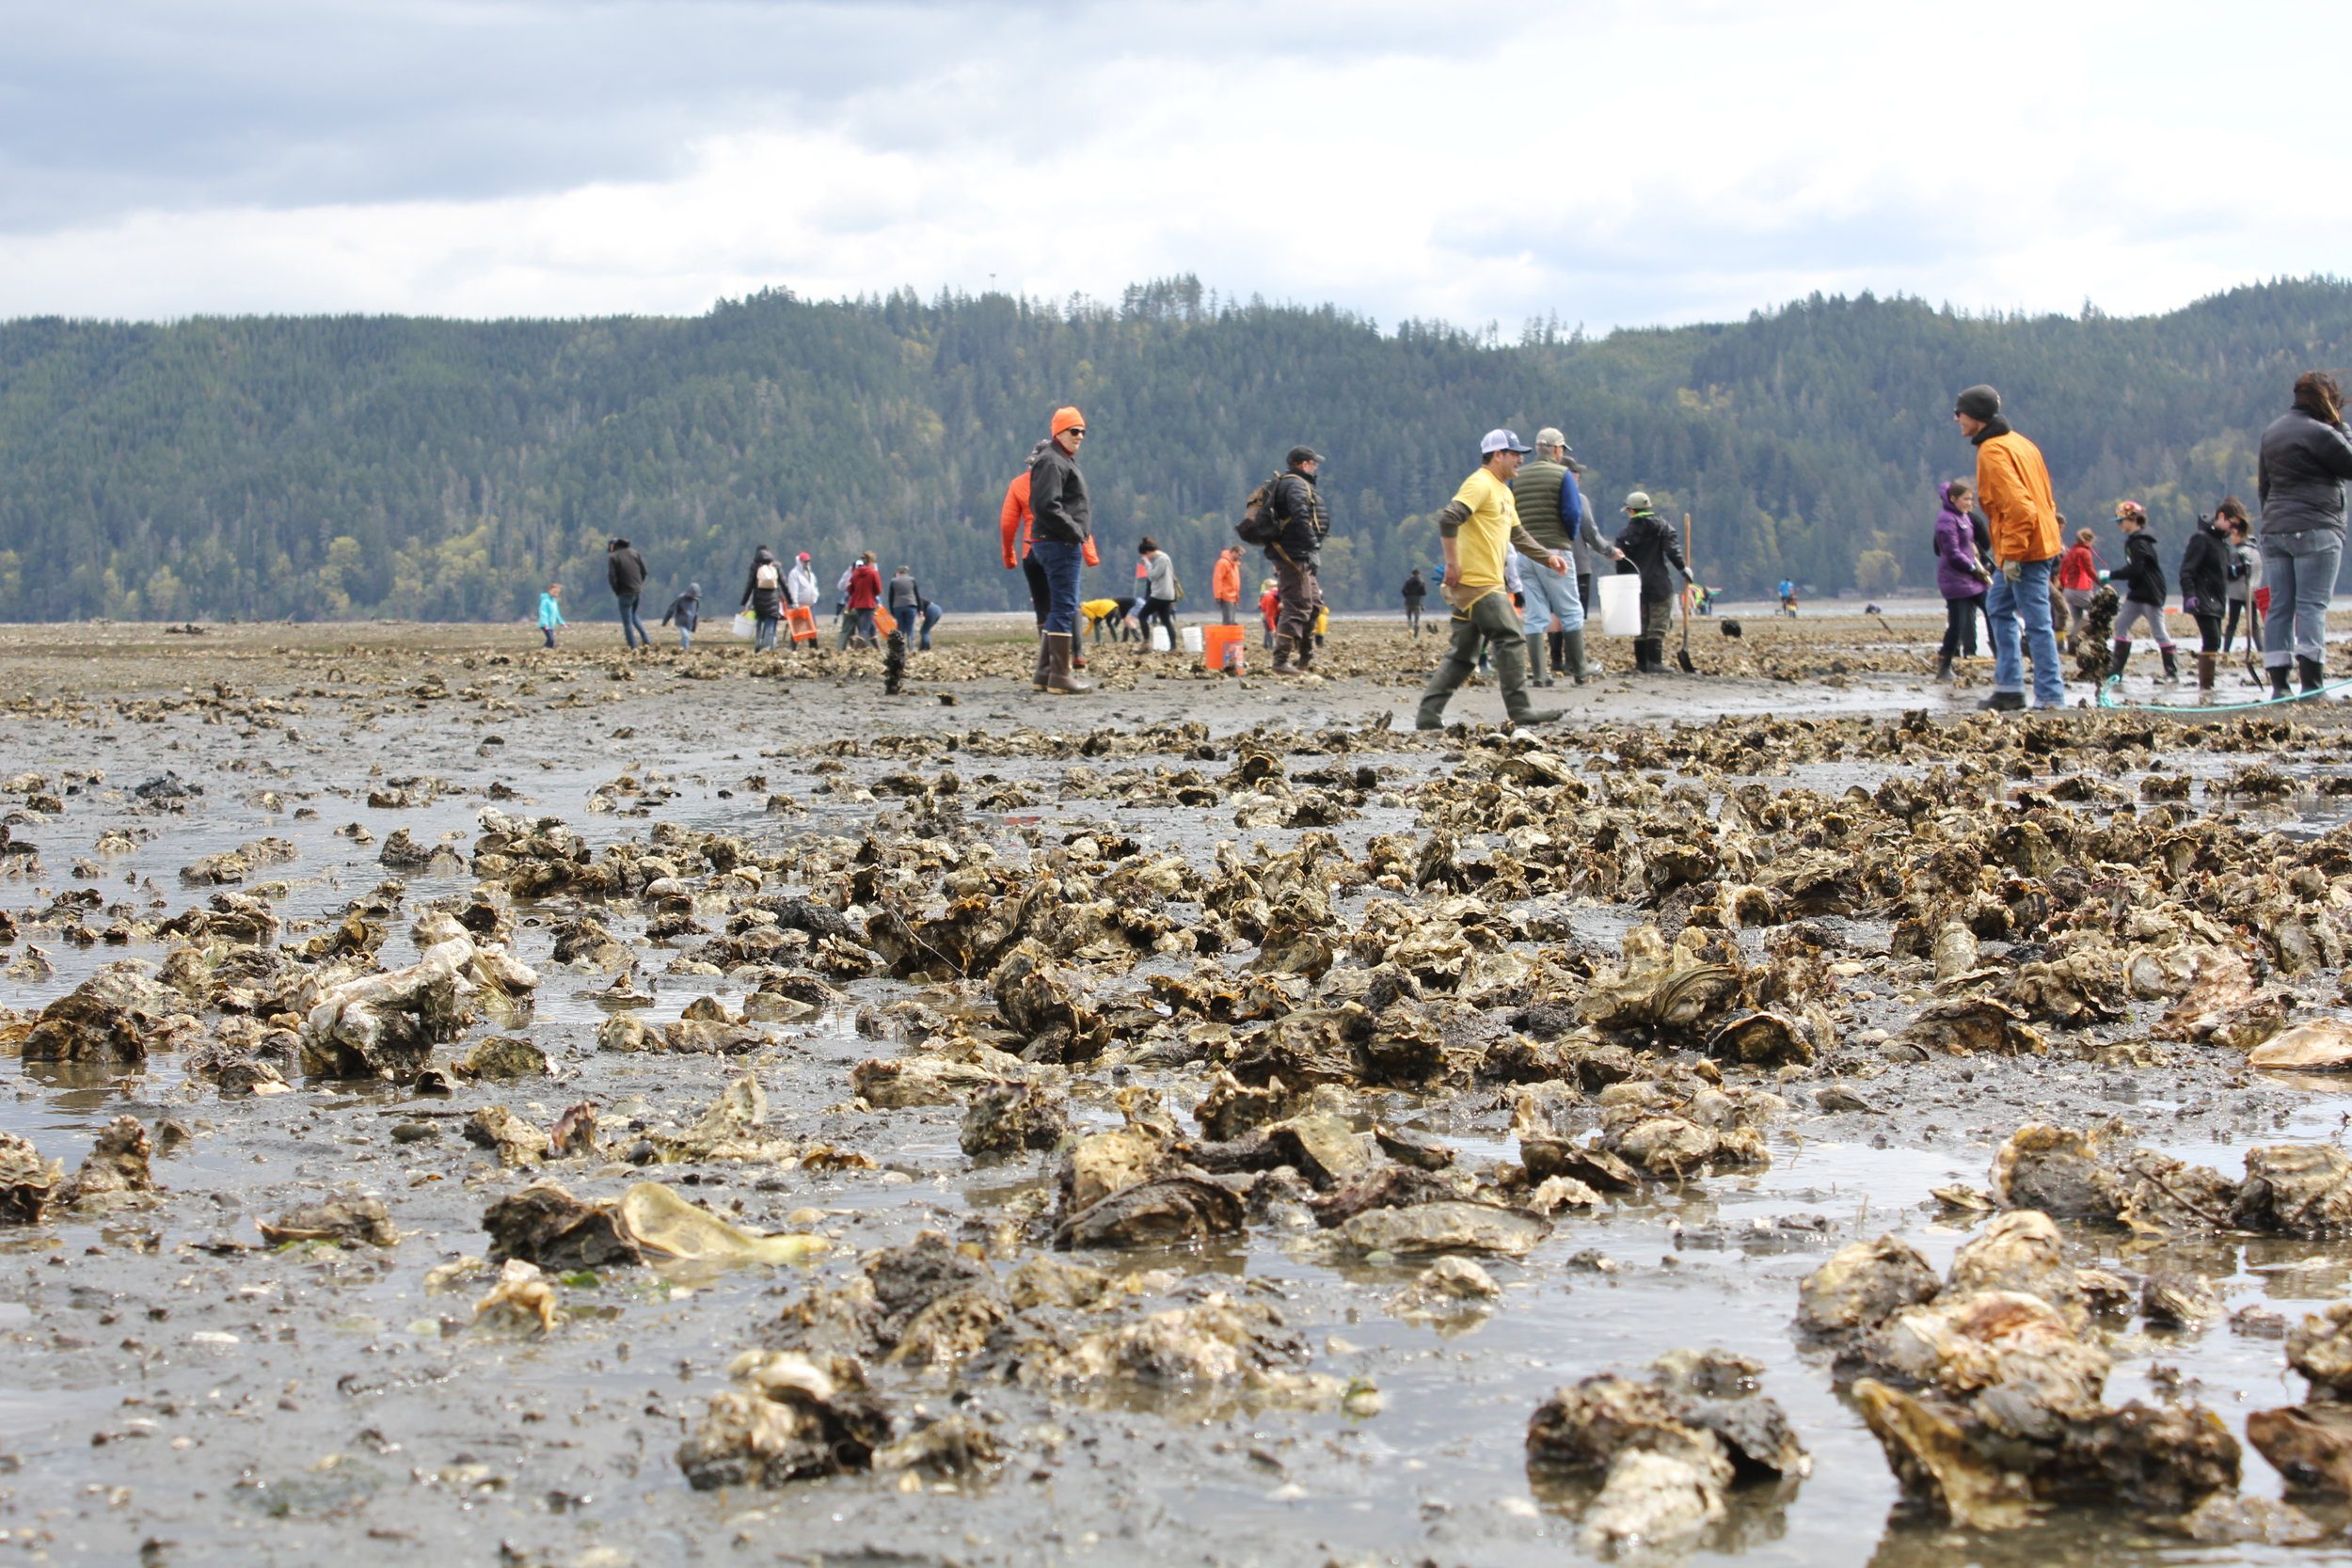 Oyster Rama attendees harvest shellfish on the tideflats of Hood Canal.